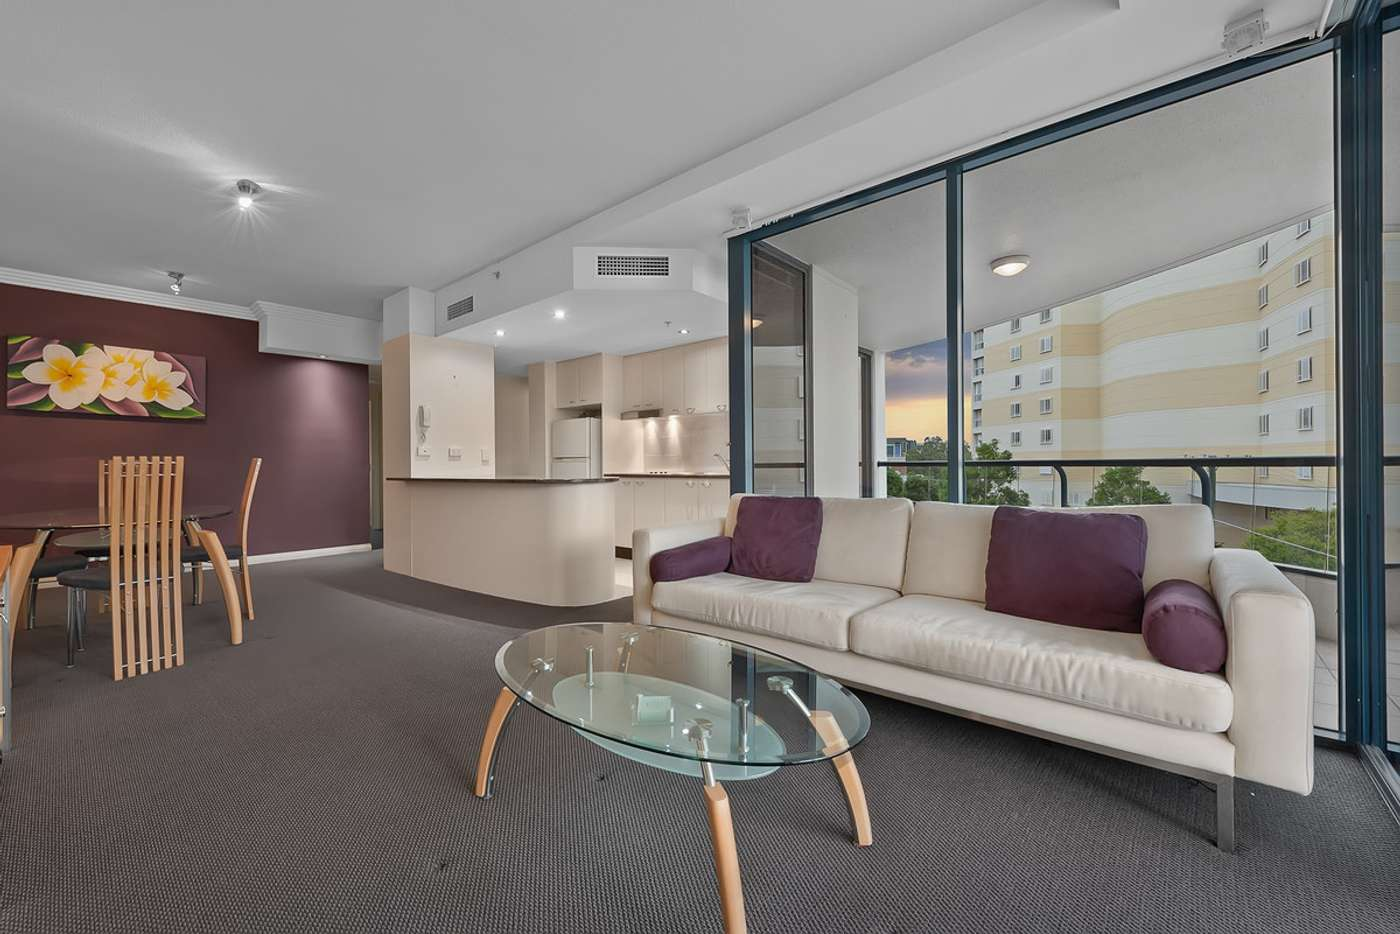 Sixth view of Homely apartment listing, 321 Main Street, Kangaroo Point QLD 4169